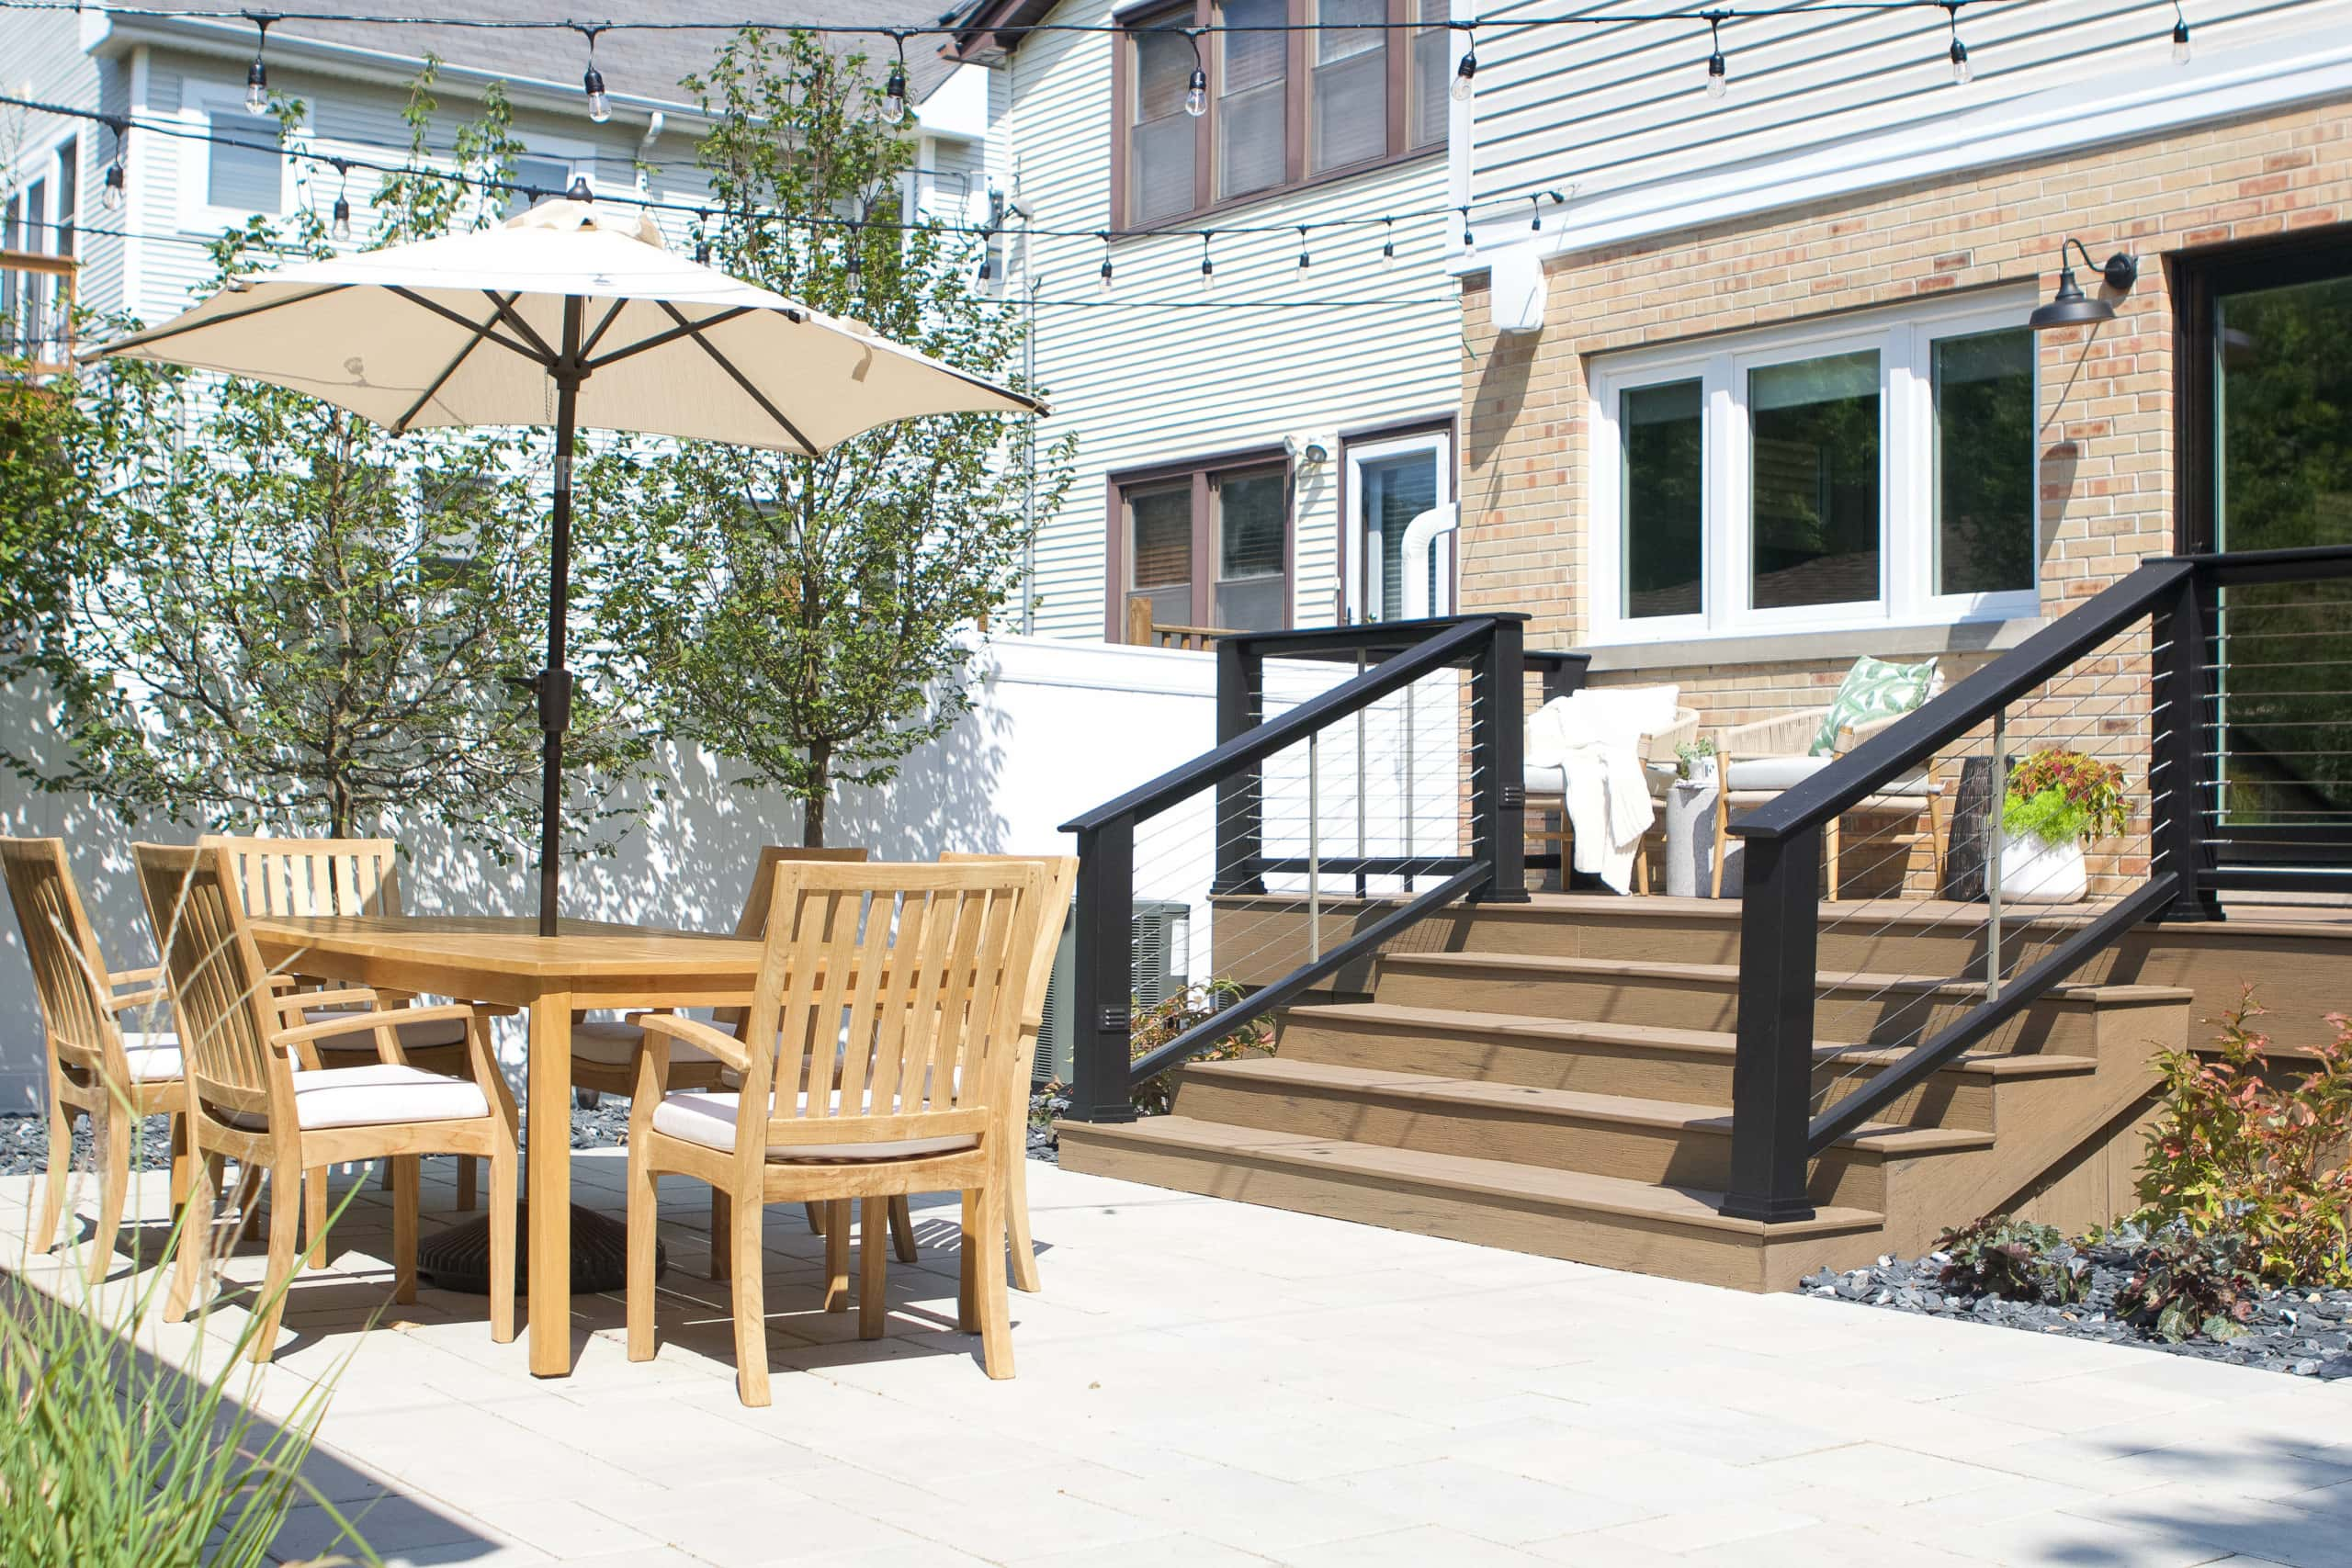 the backyard renovation lessons we learned along the way